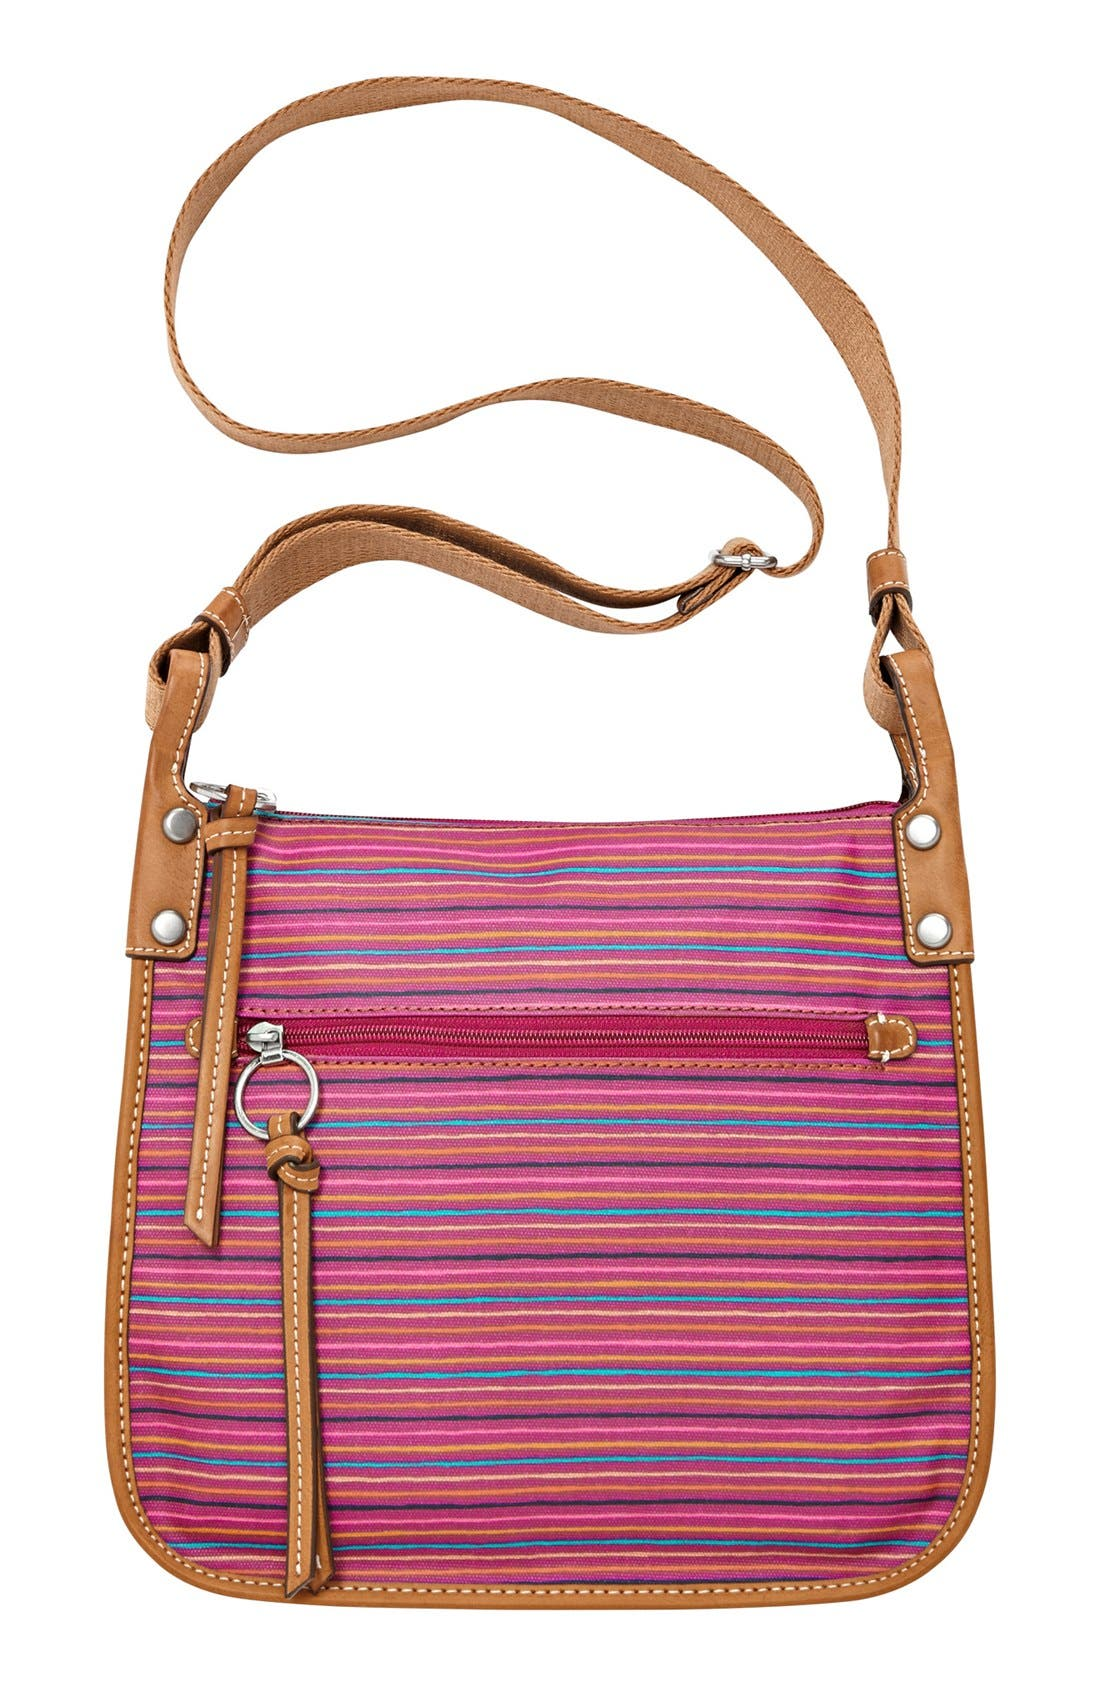 Alternate Image 3  - Fossil 'Key-Per' Crossbody Bag